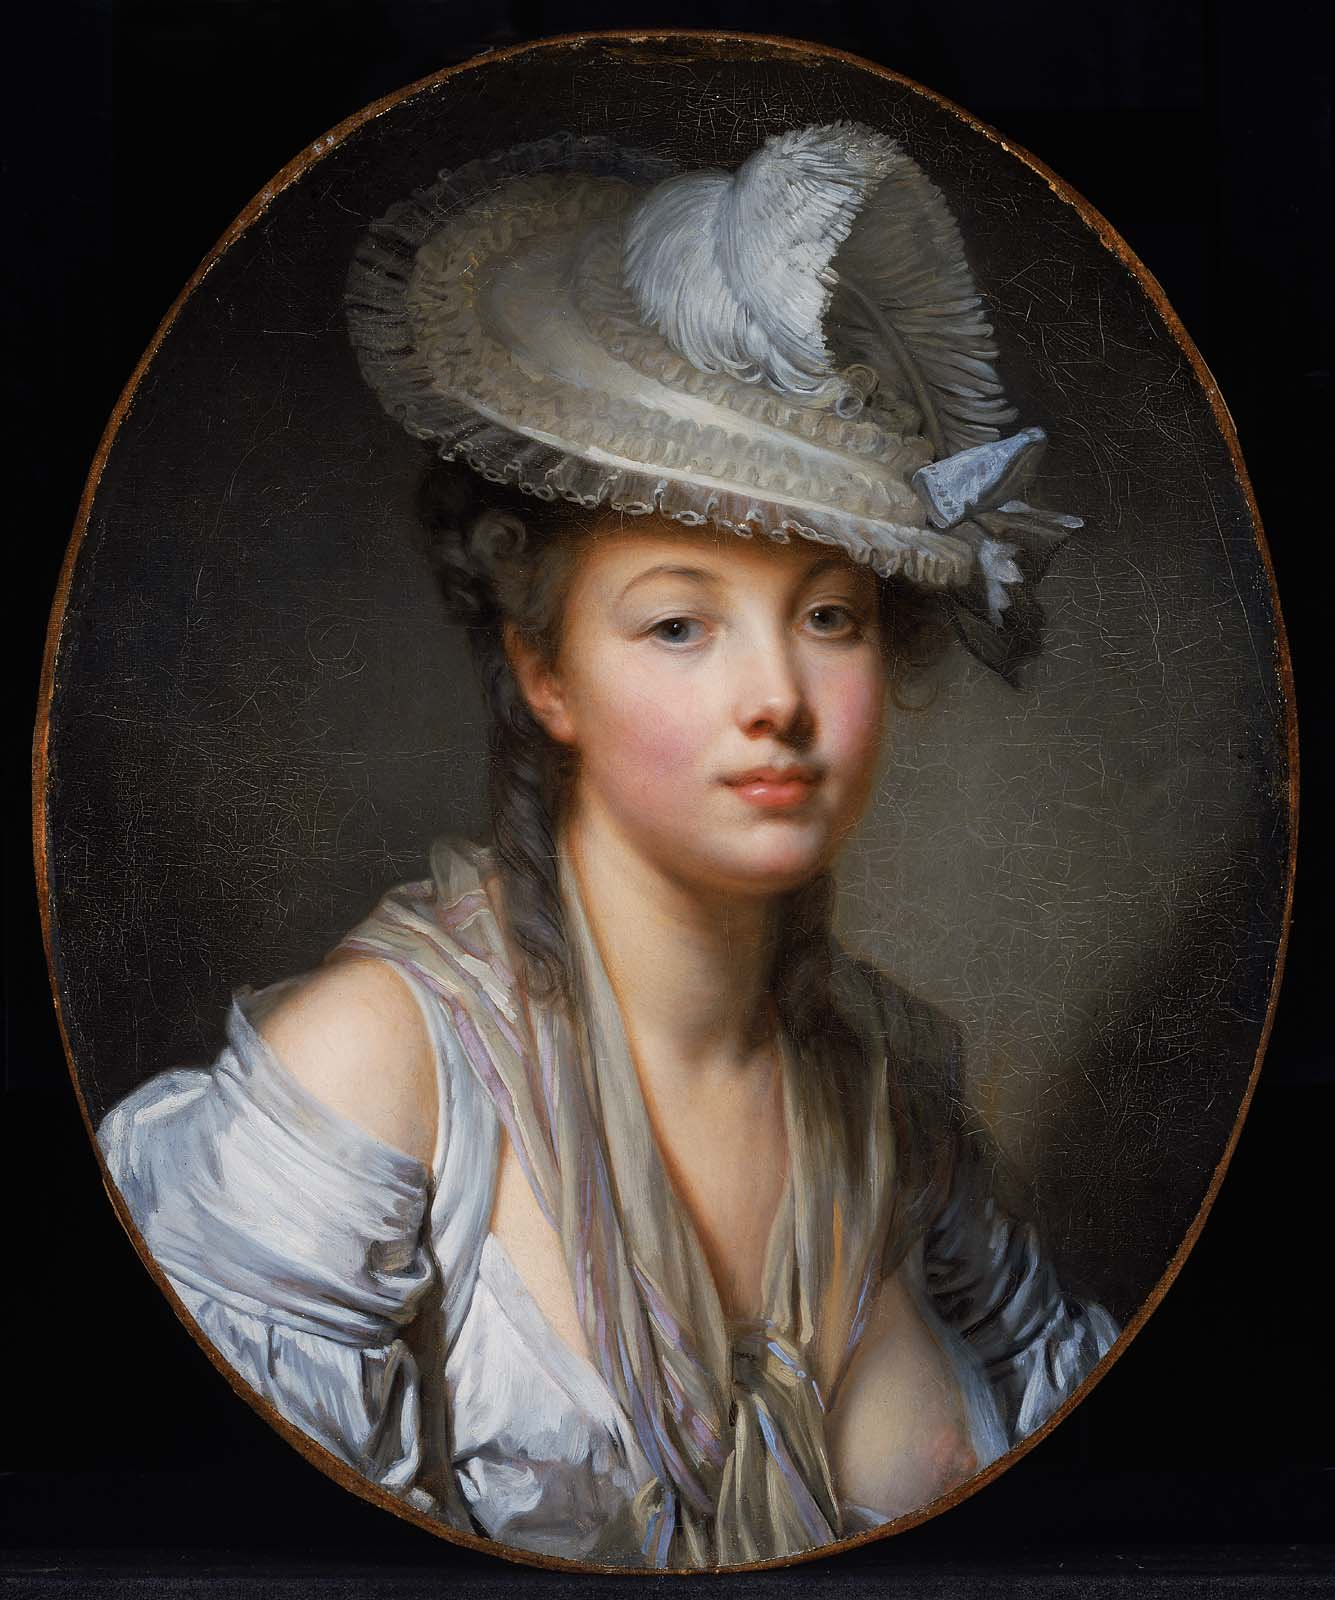 Jean-Baptiste Greuze-the white hat